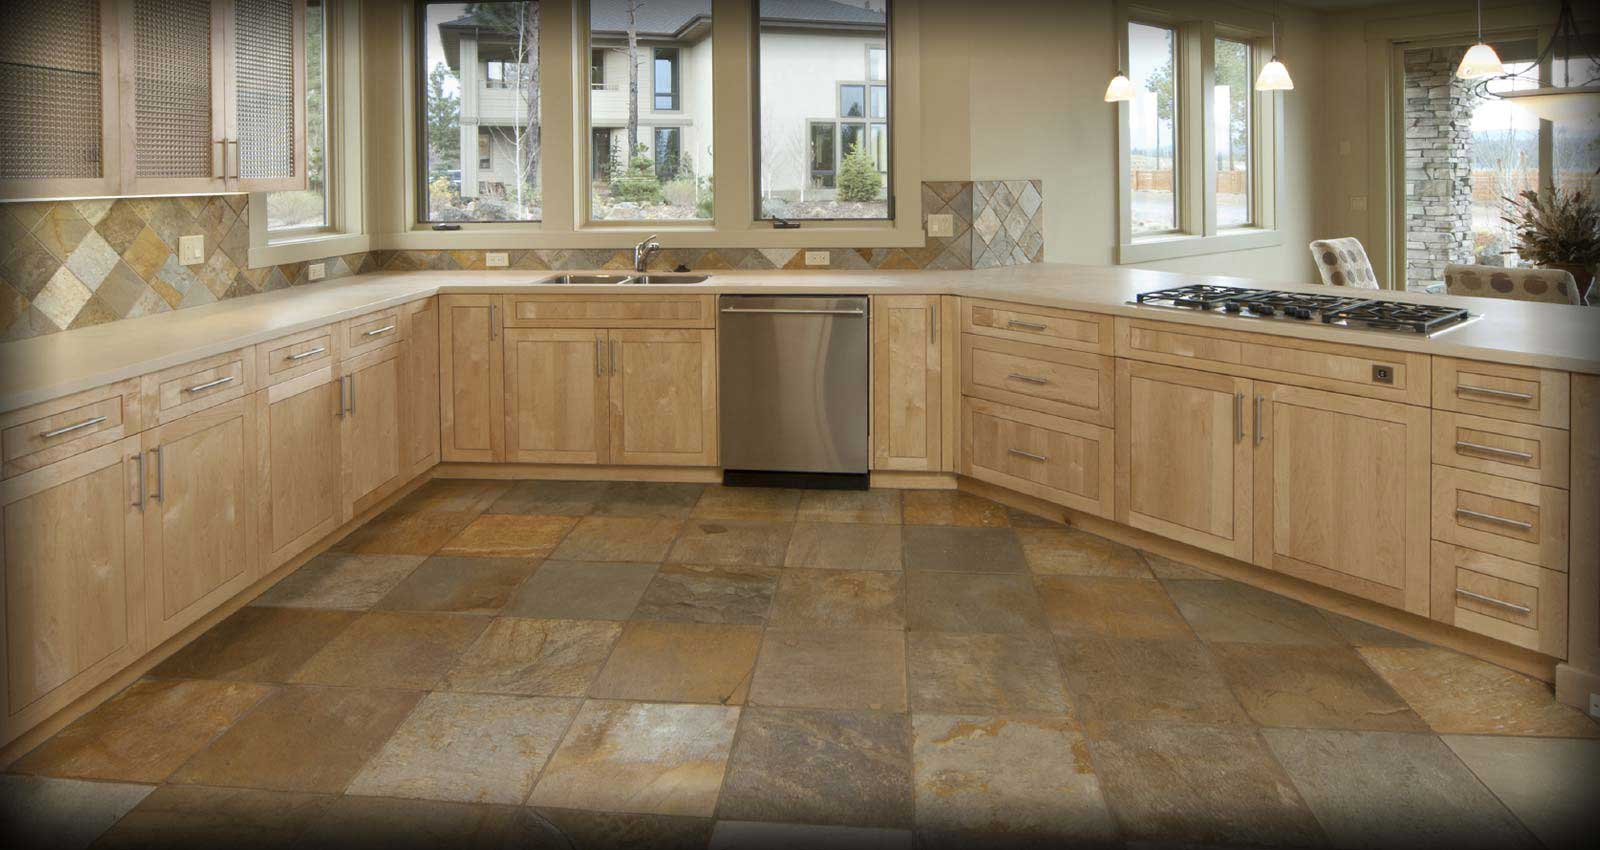 Premium home improvement in clarksville tn additions remodels tile kitchen dailygadgetfo Images